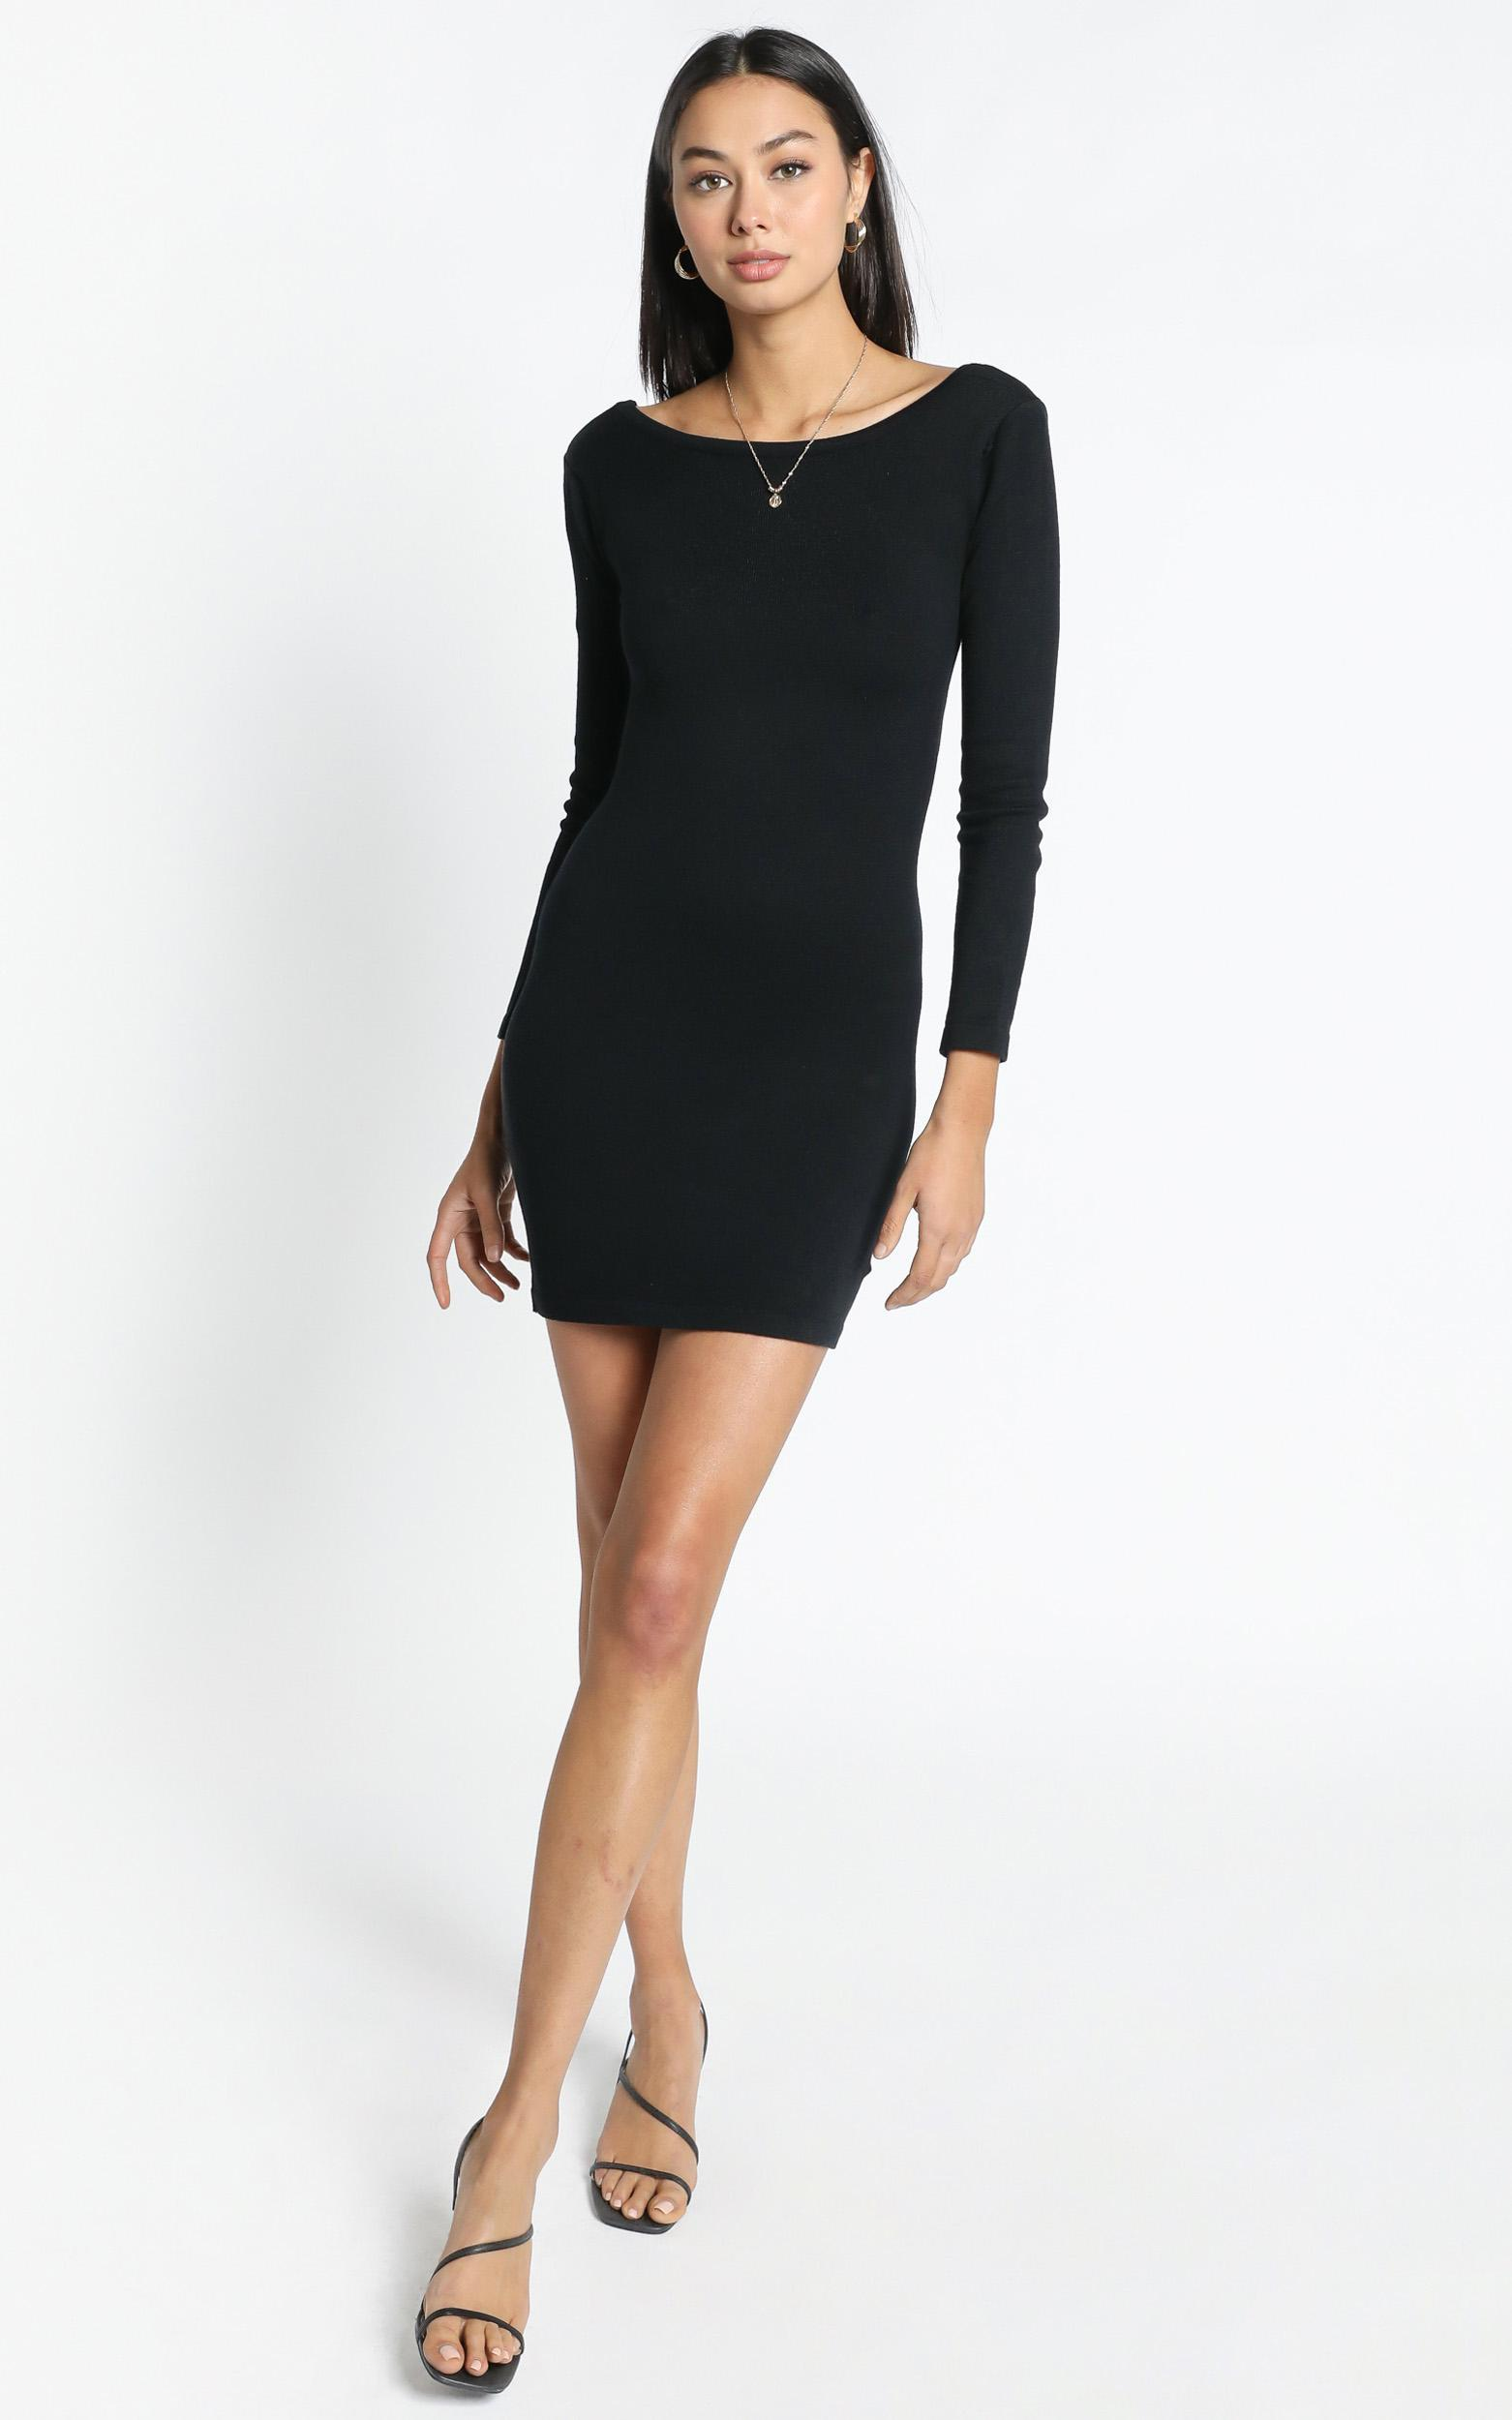 Sonya Knit Dress in Black - 12 (L), Black, hi-res image number null